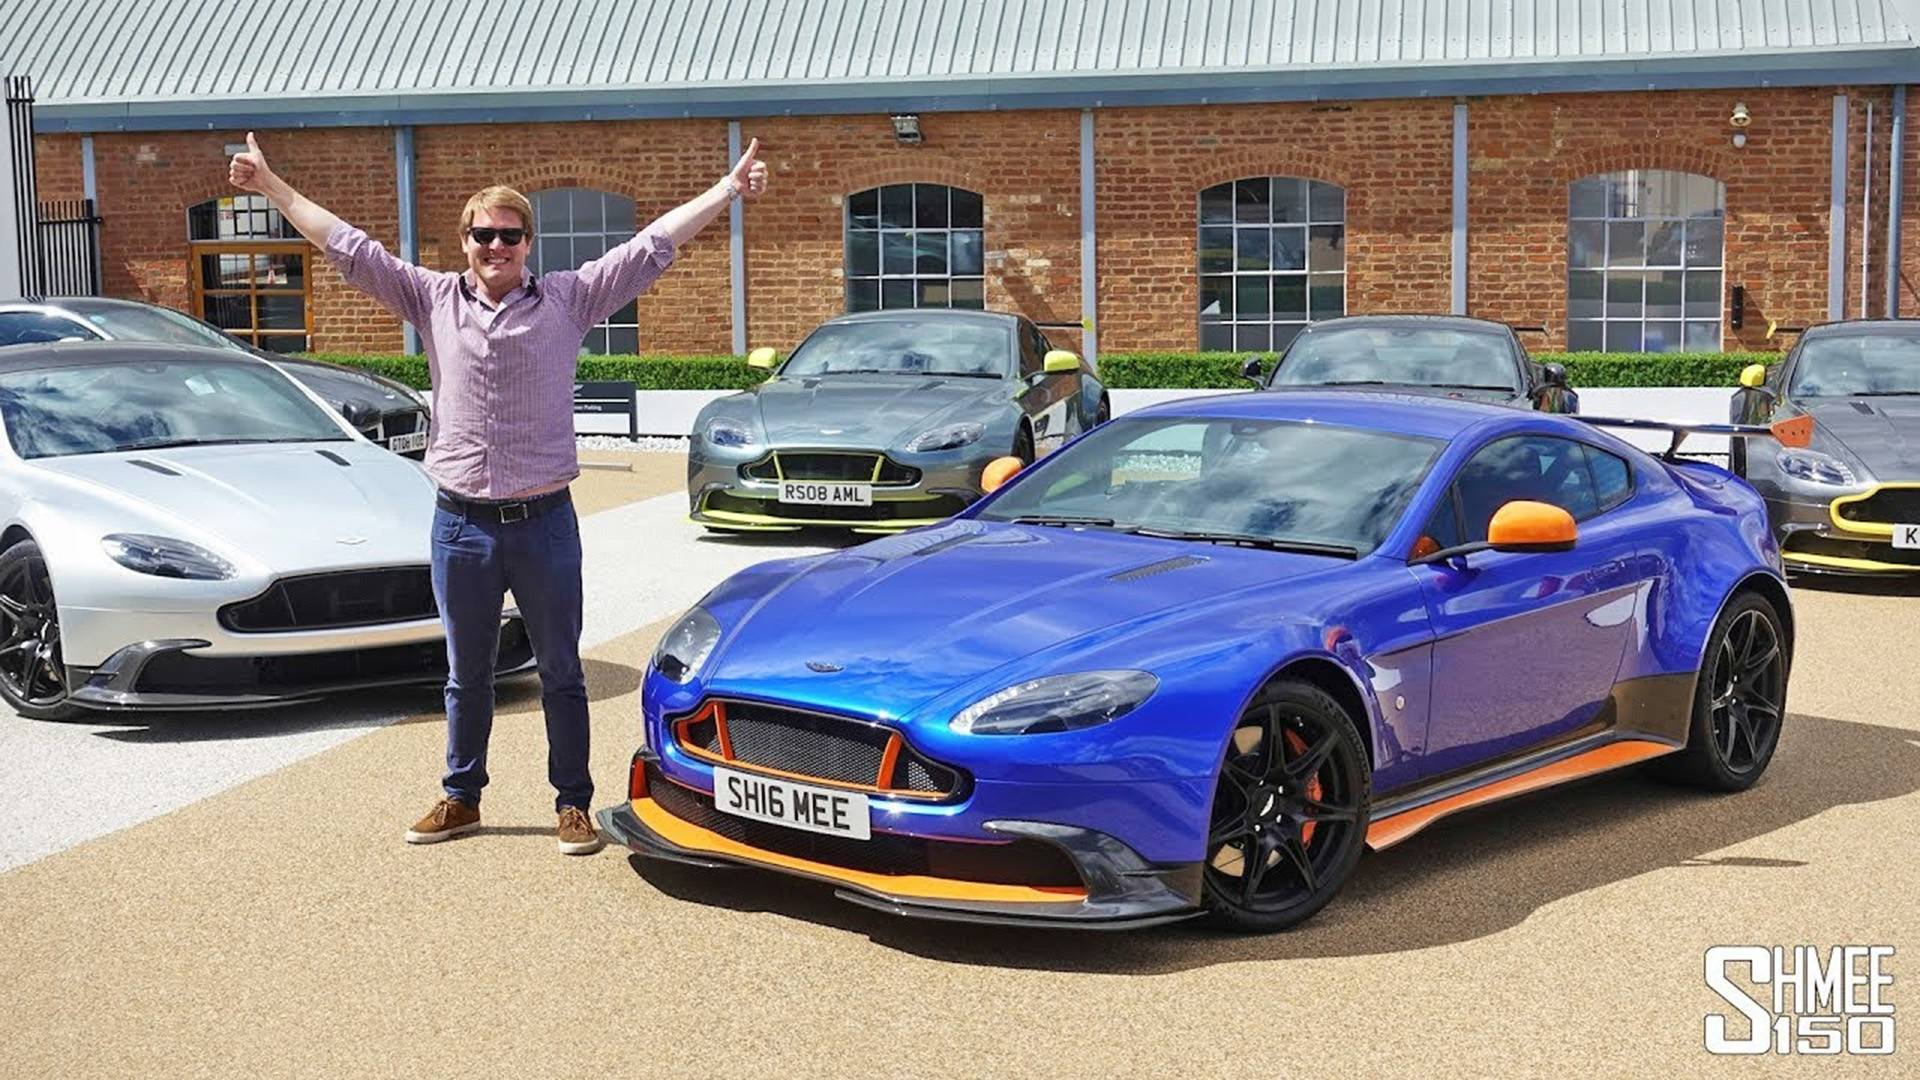 Here S Why I Won T Sell My Aston Martin Vantage Gt8 The Shmeemobiles Motorsport Tv